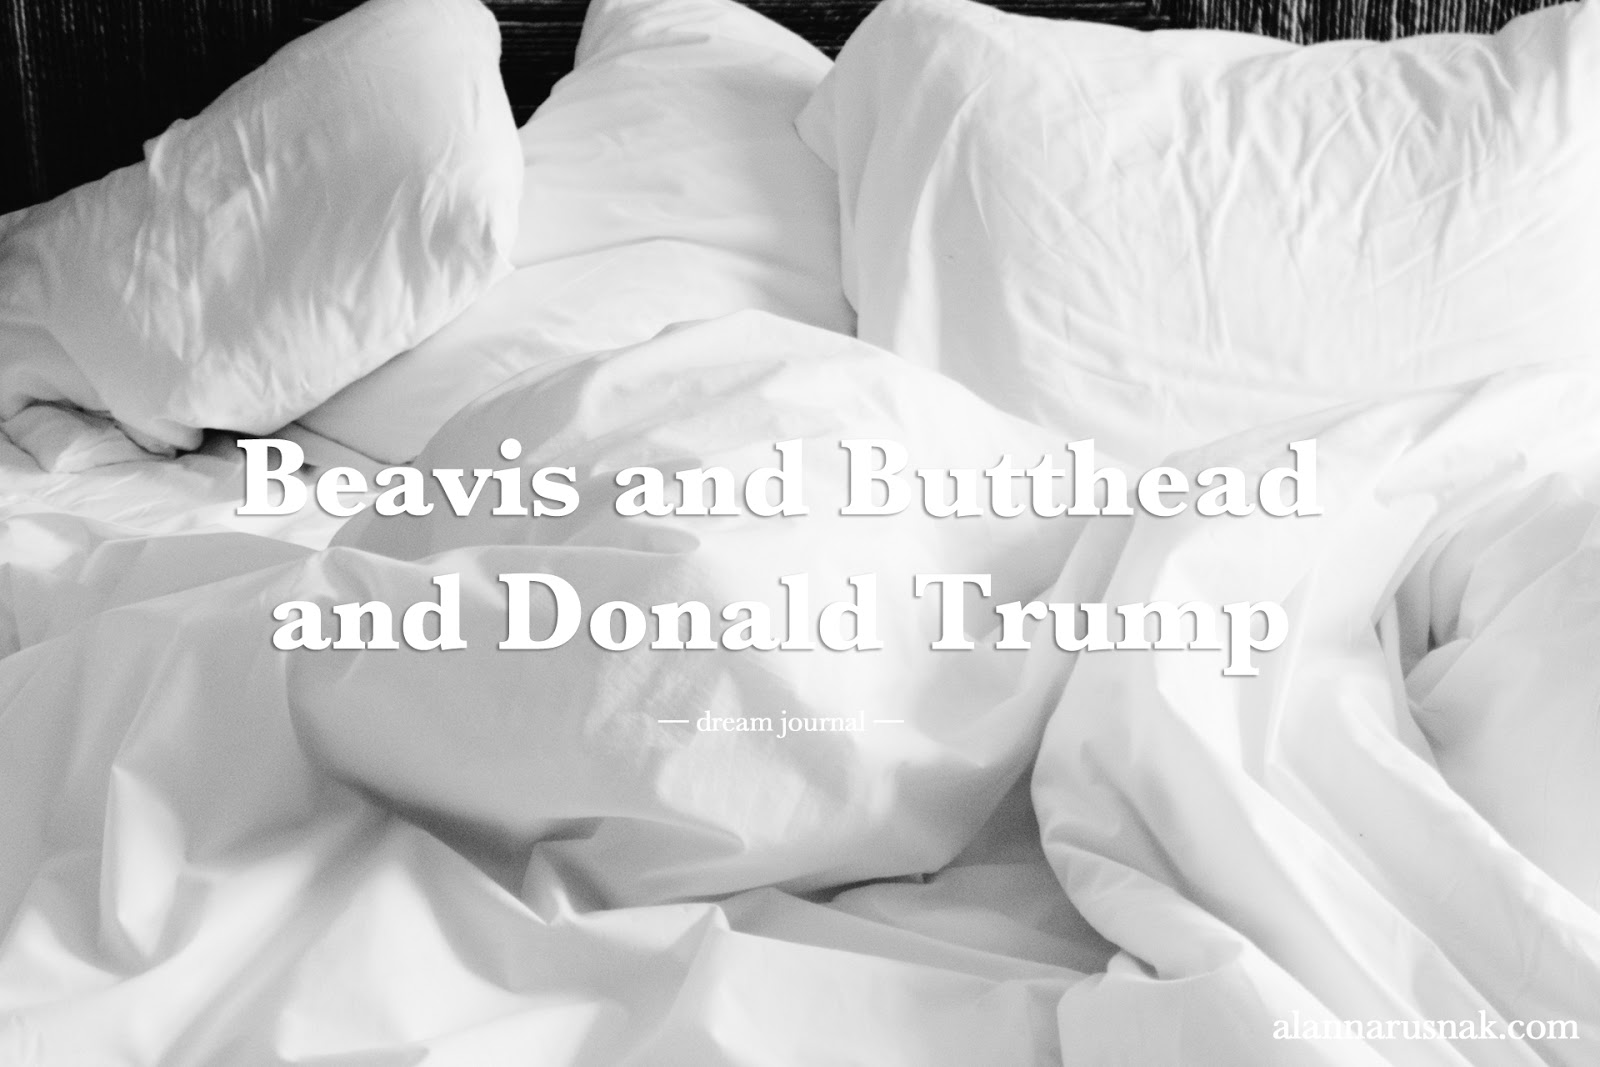 beavis and butthead and donald trump